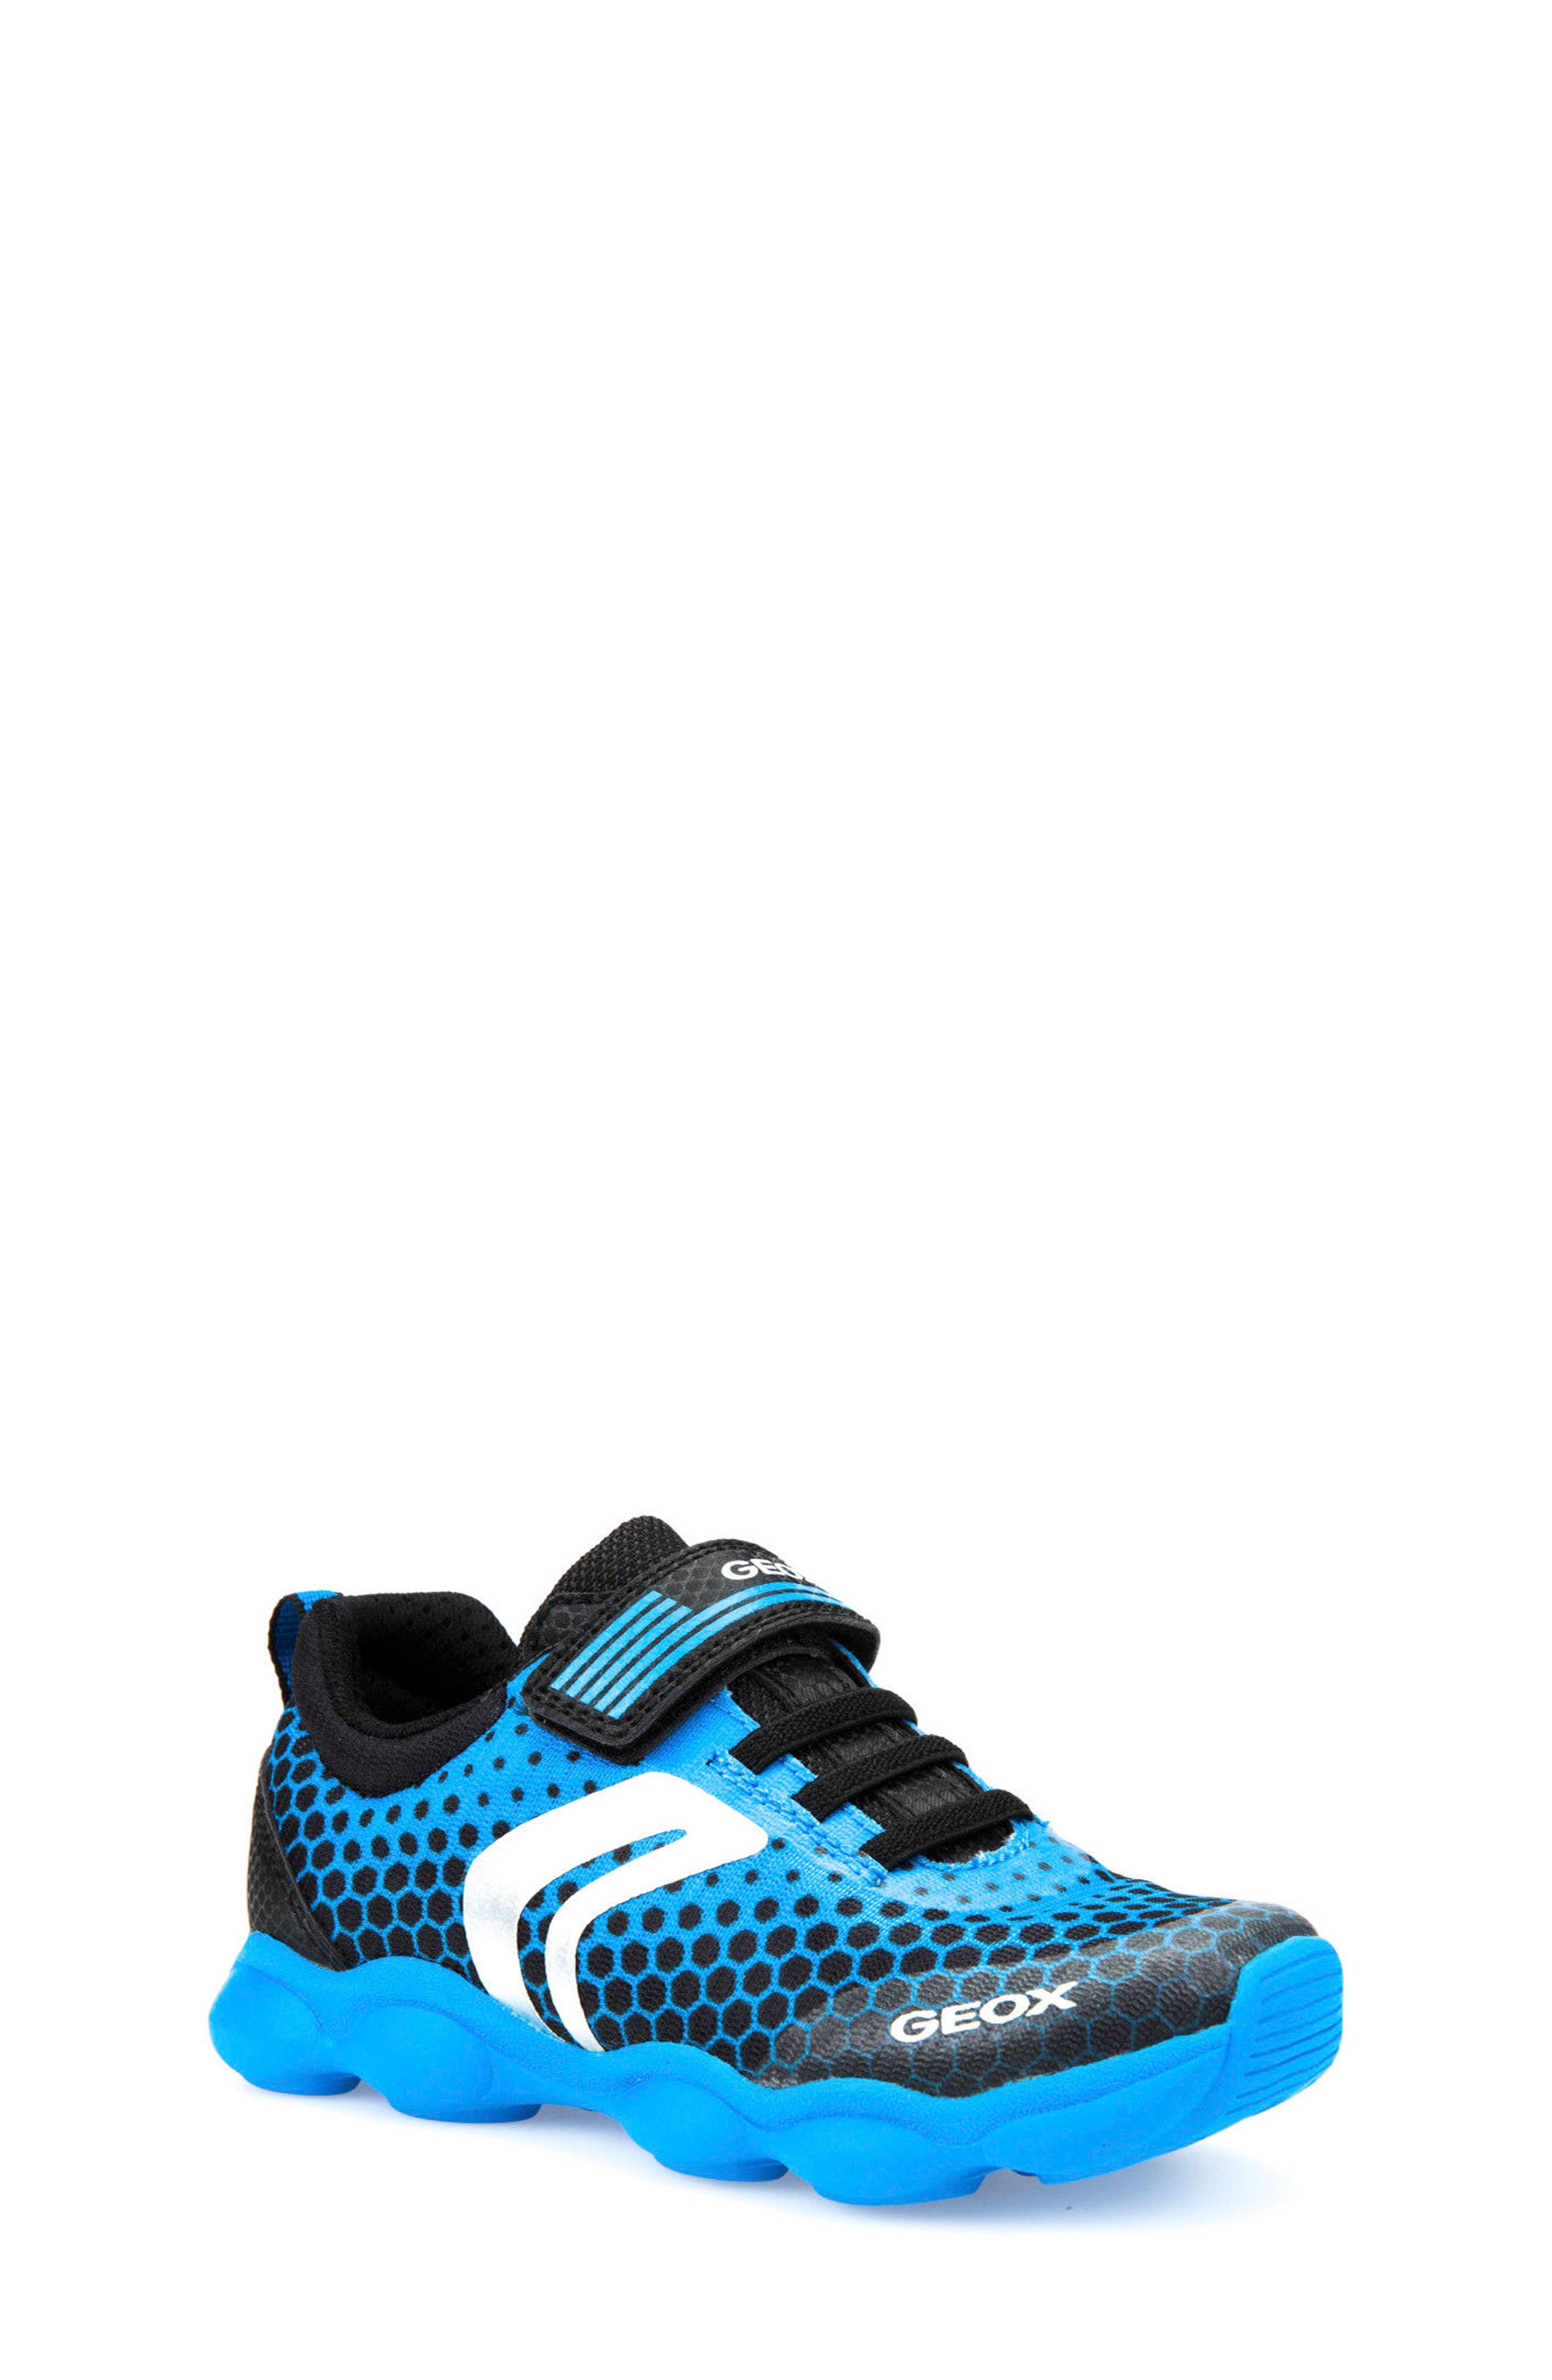 Munfrey Sneaker,                         Main,                         color, Light Blue/ Black